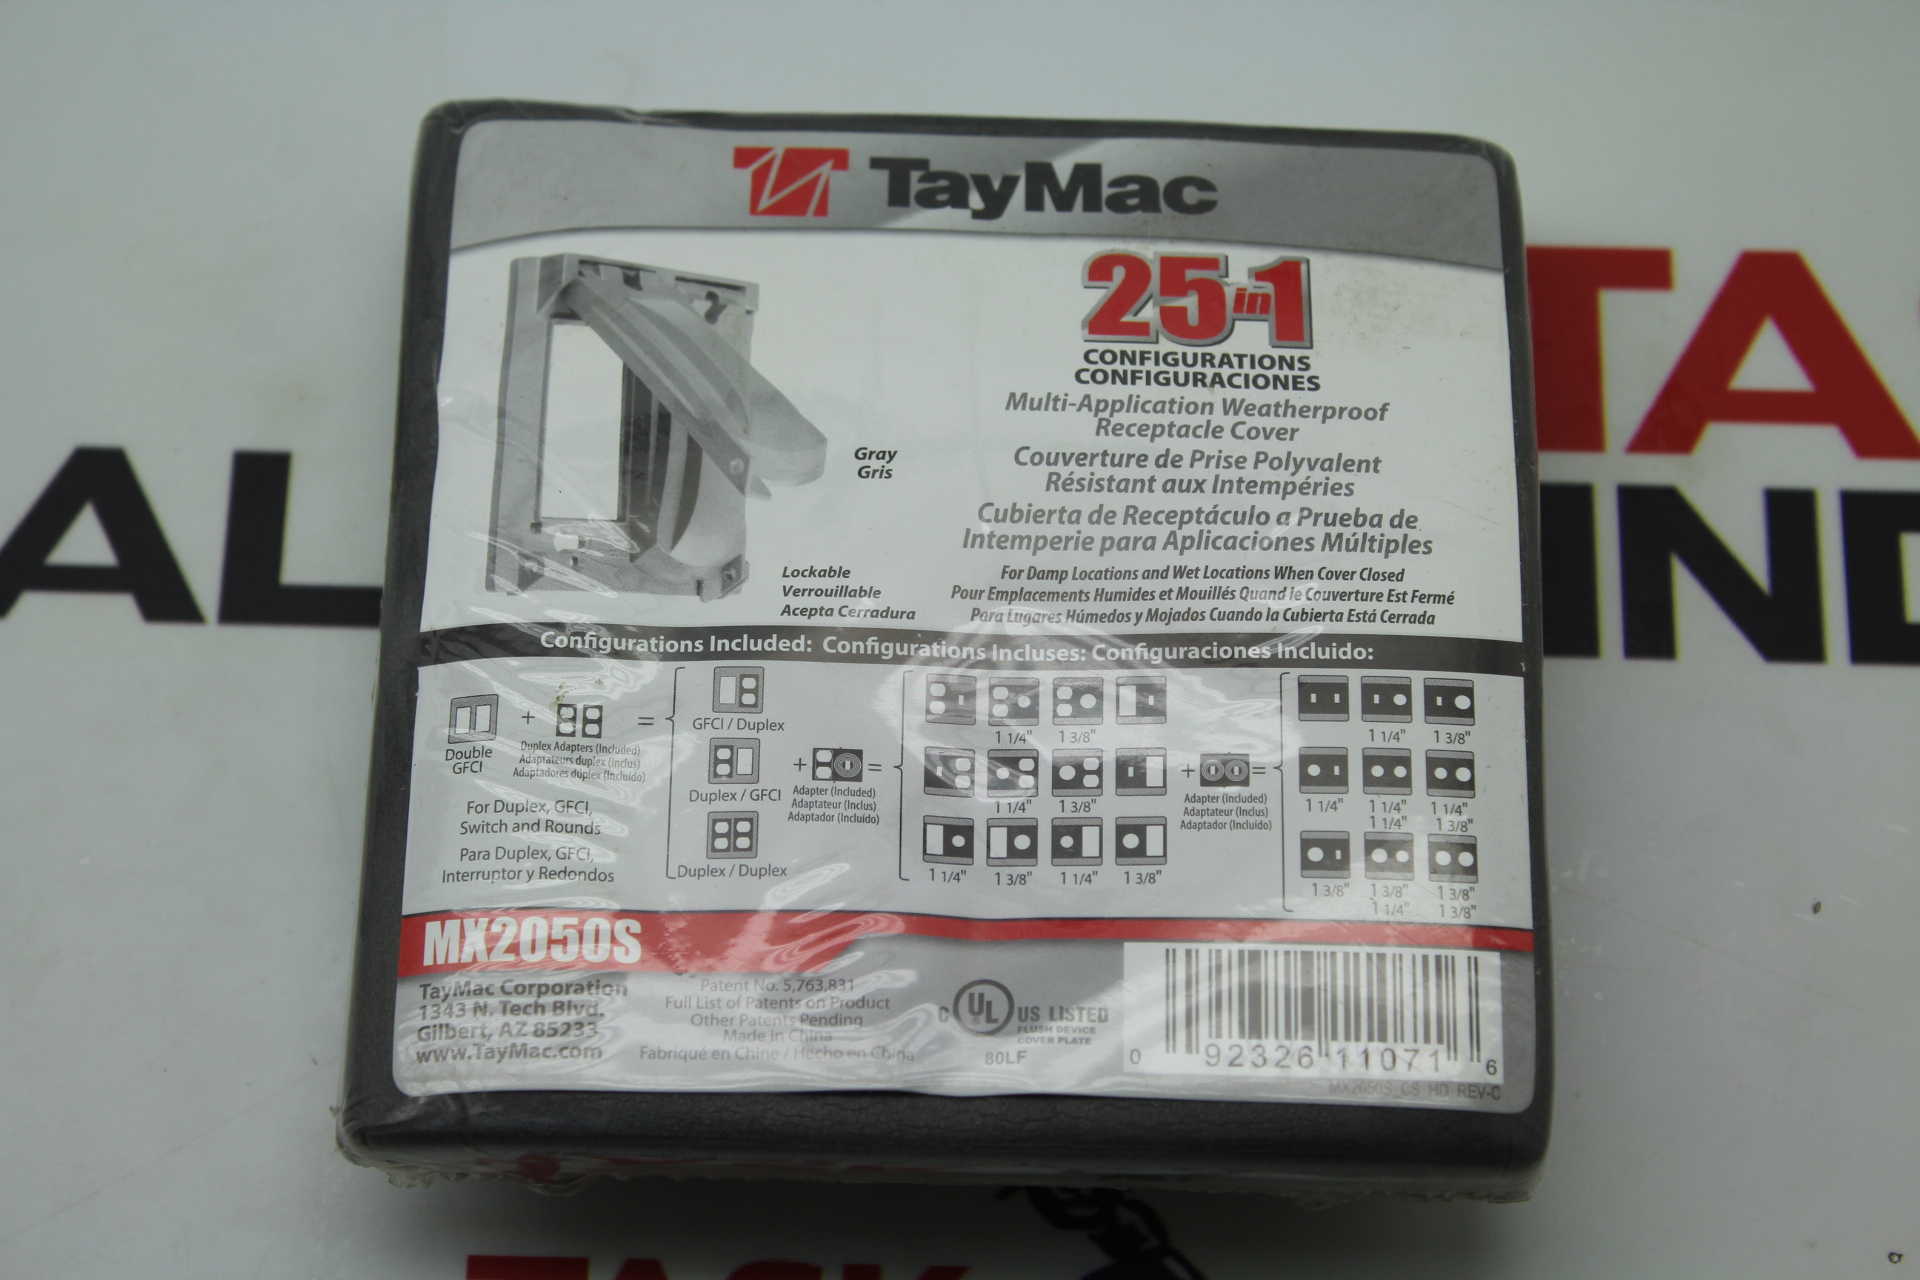 TayMac MX2050S Multi-Application Weatherproof Receptacle Cover